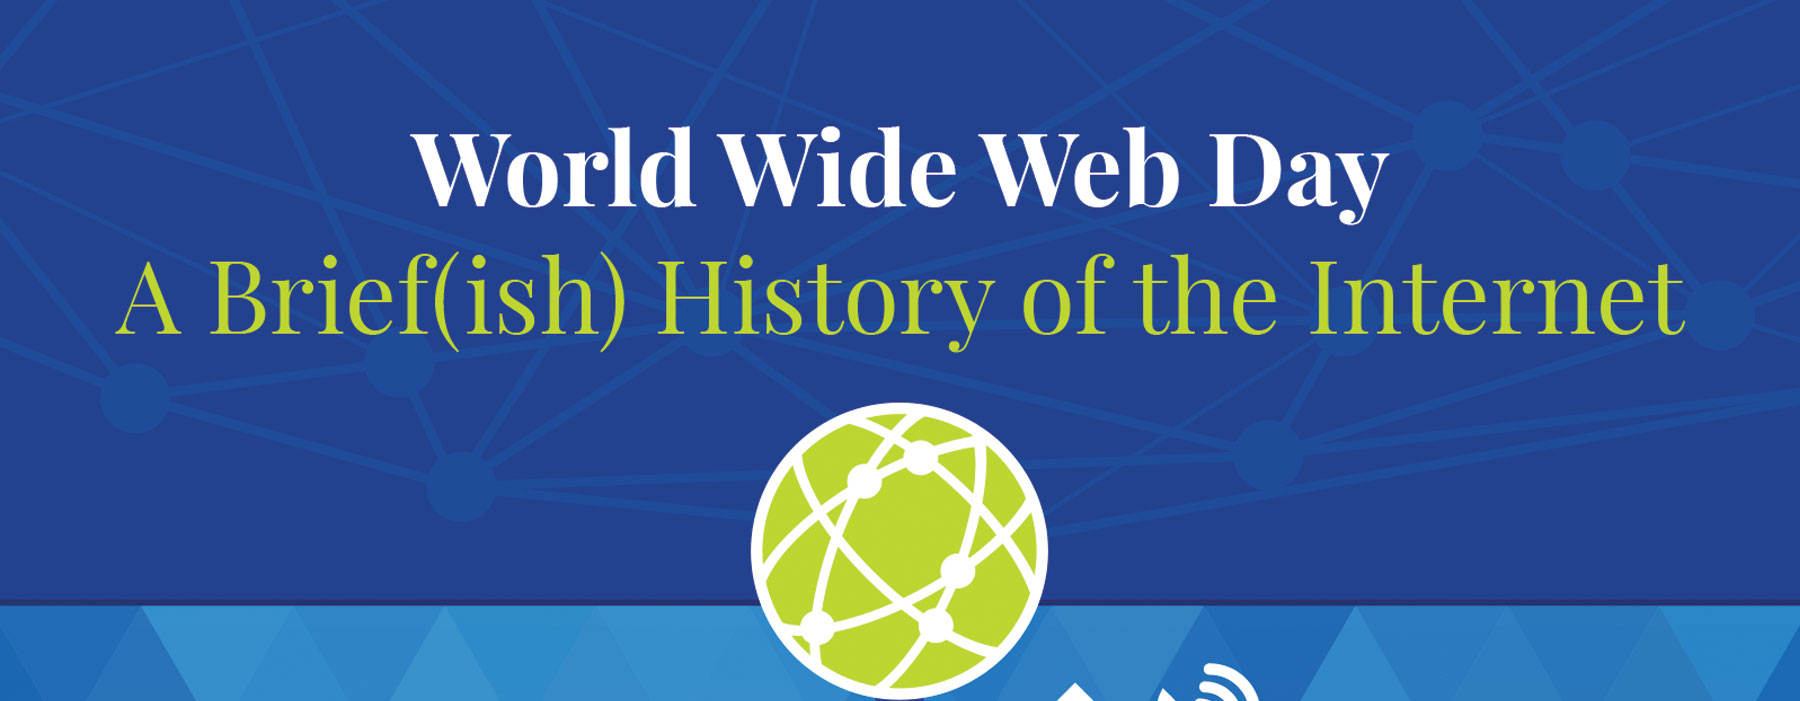 write a brief history of world wide web